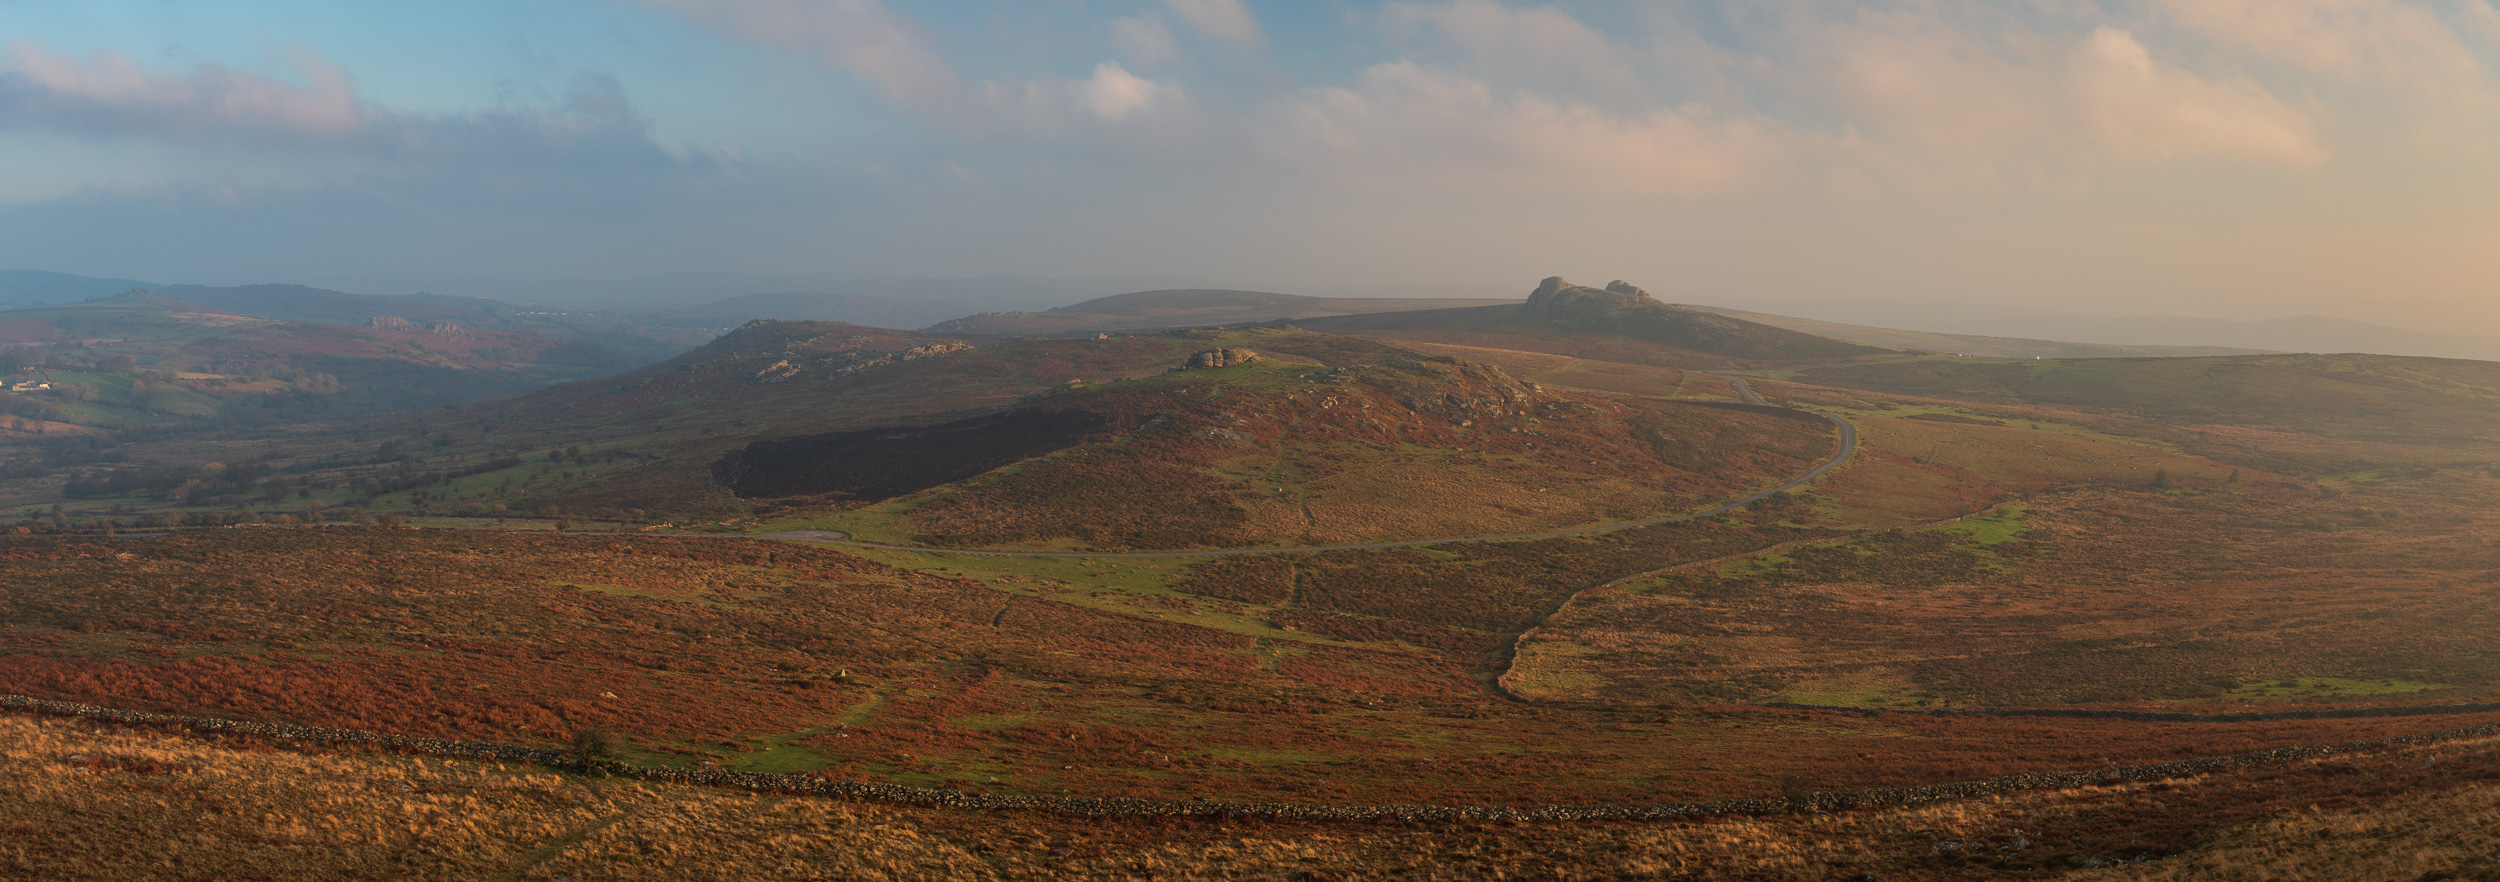 The View from Rippon Tor (Panorama), Dartmoor, Devon  - Nikon D850, Nikkor 24-70 mm f/2.8 VR at 52 mm, f/11, 1/10th second at ISO 64, Lee Filters Circular Polariser, 9 image stitch cropped at 6:17.